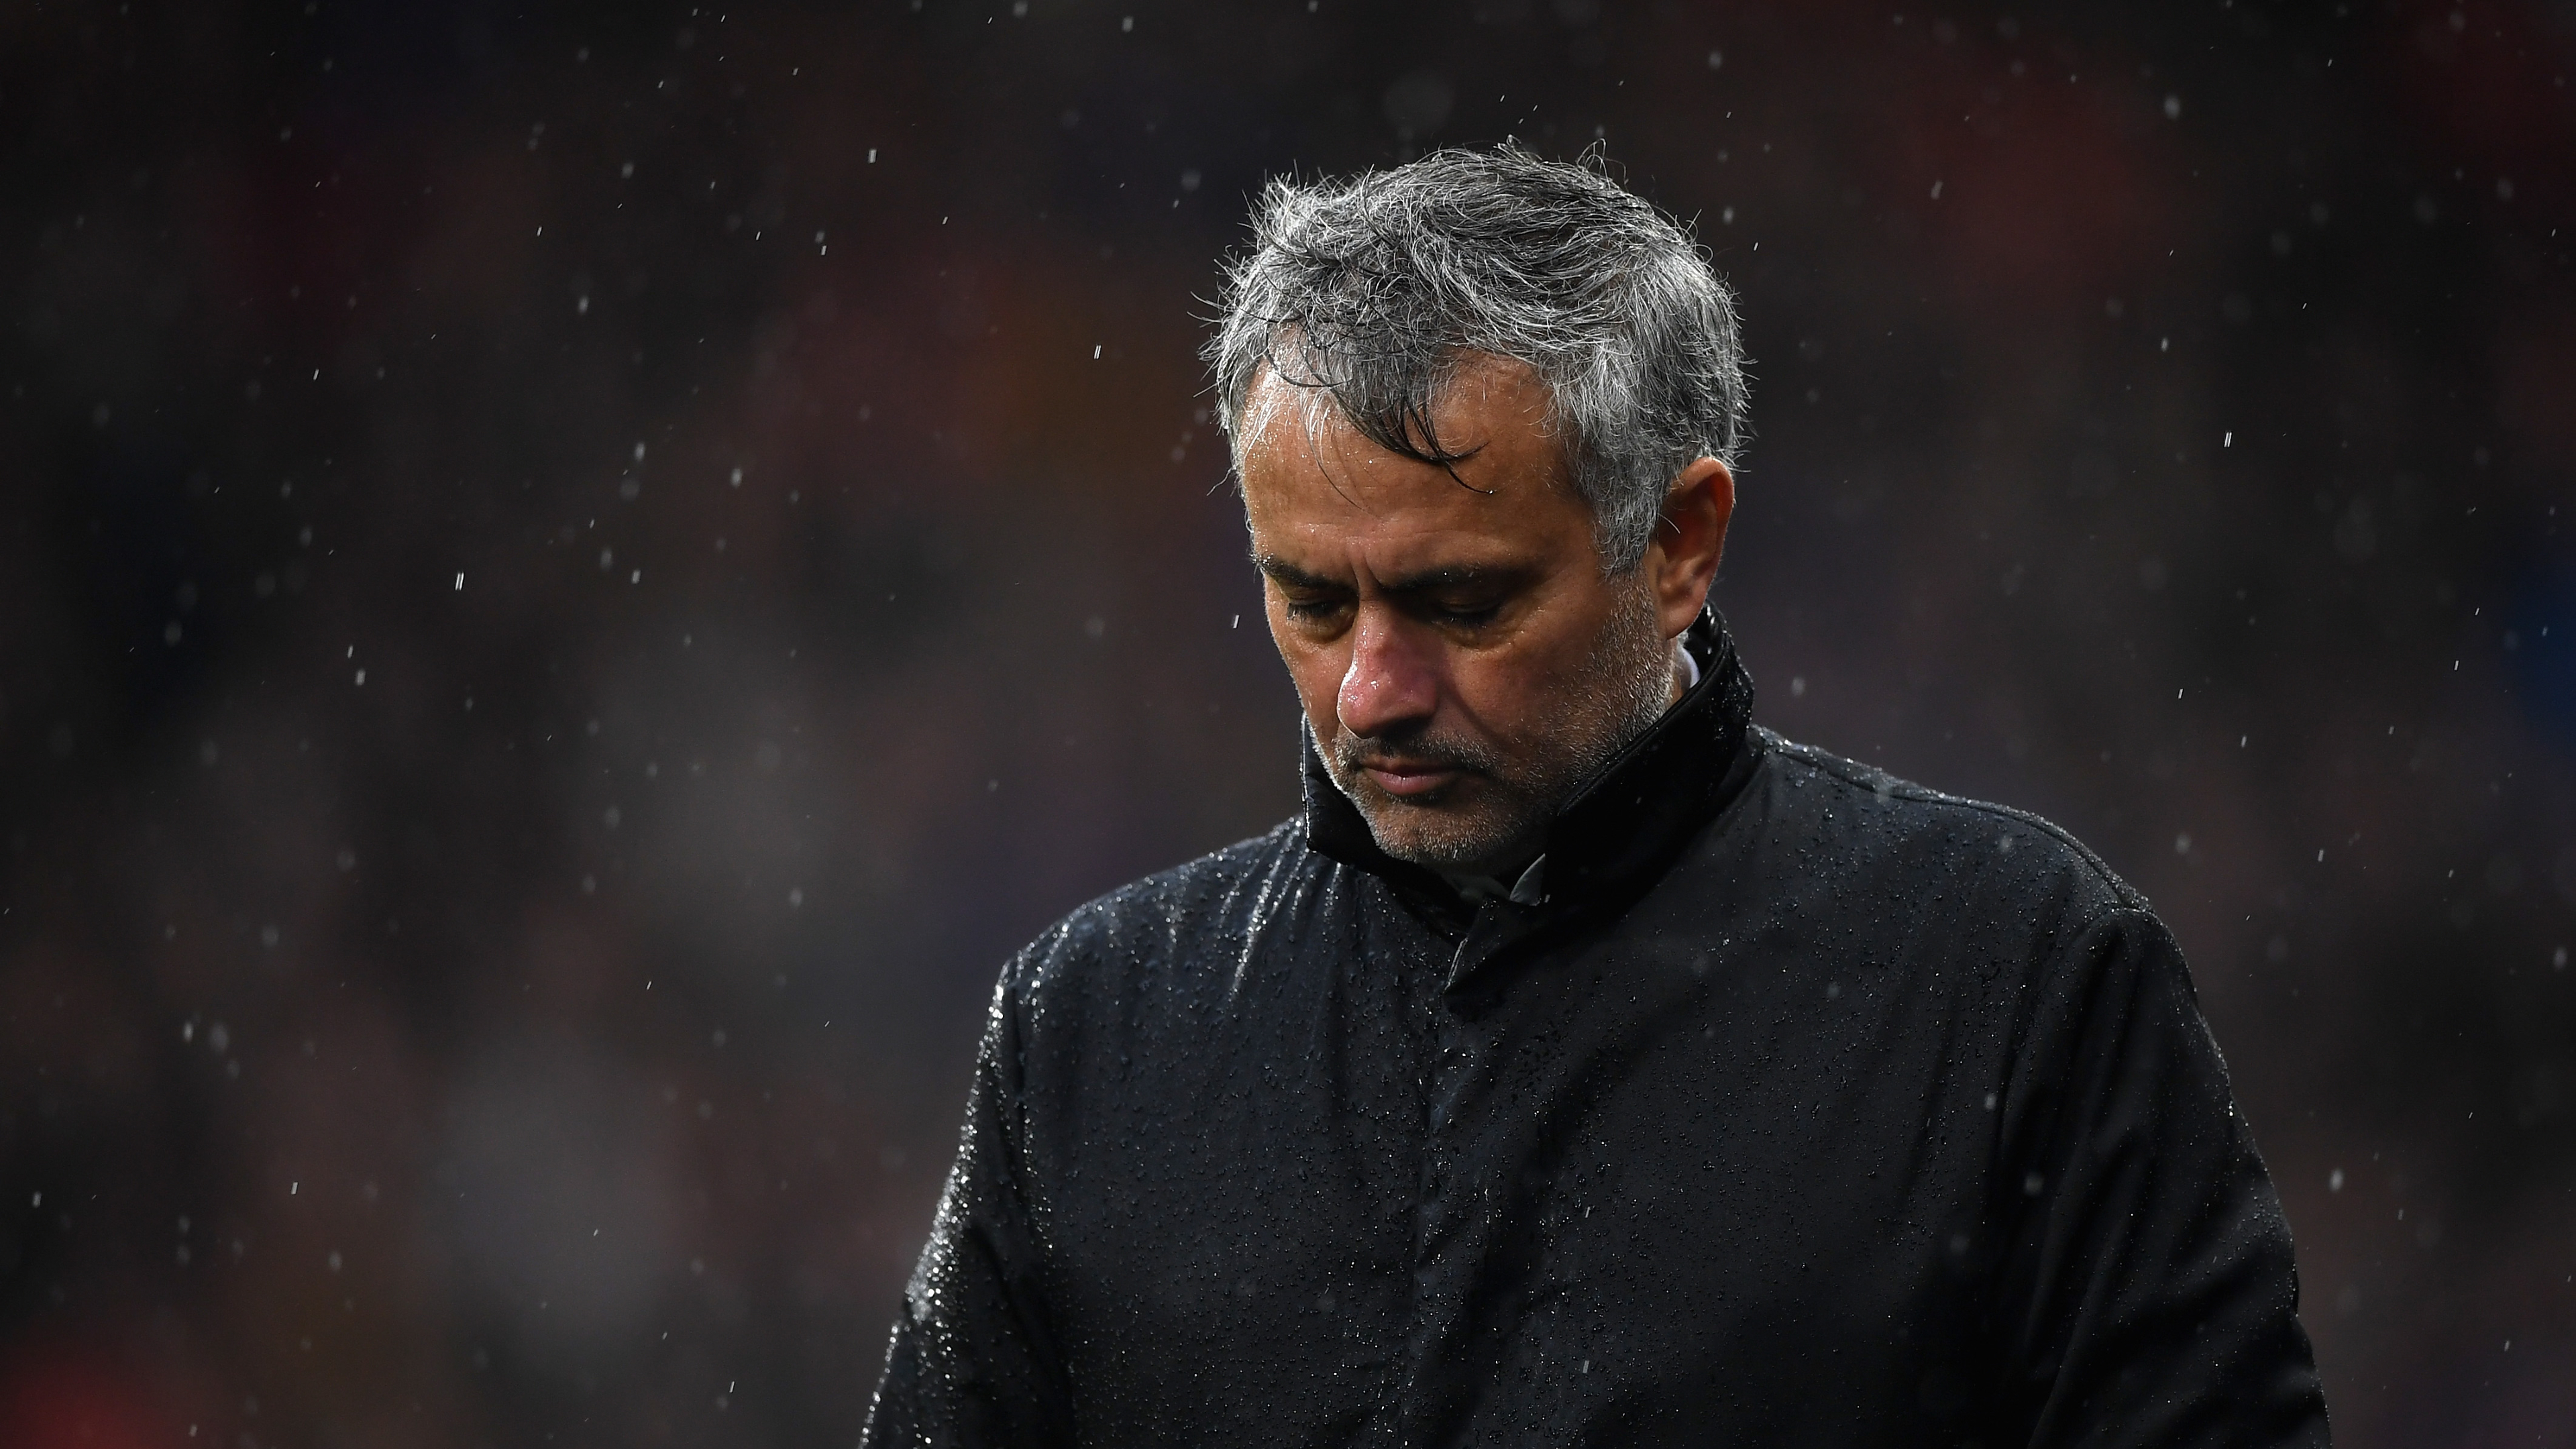 Jose Mourinho Shed Tears As He Admit He Misses Football